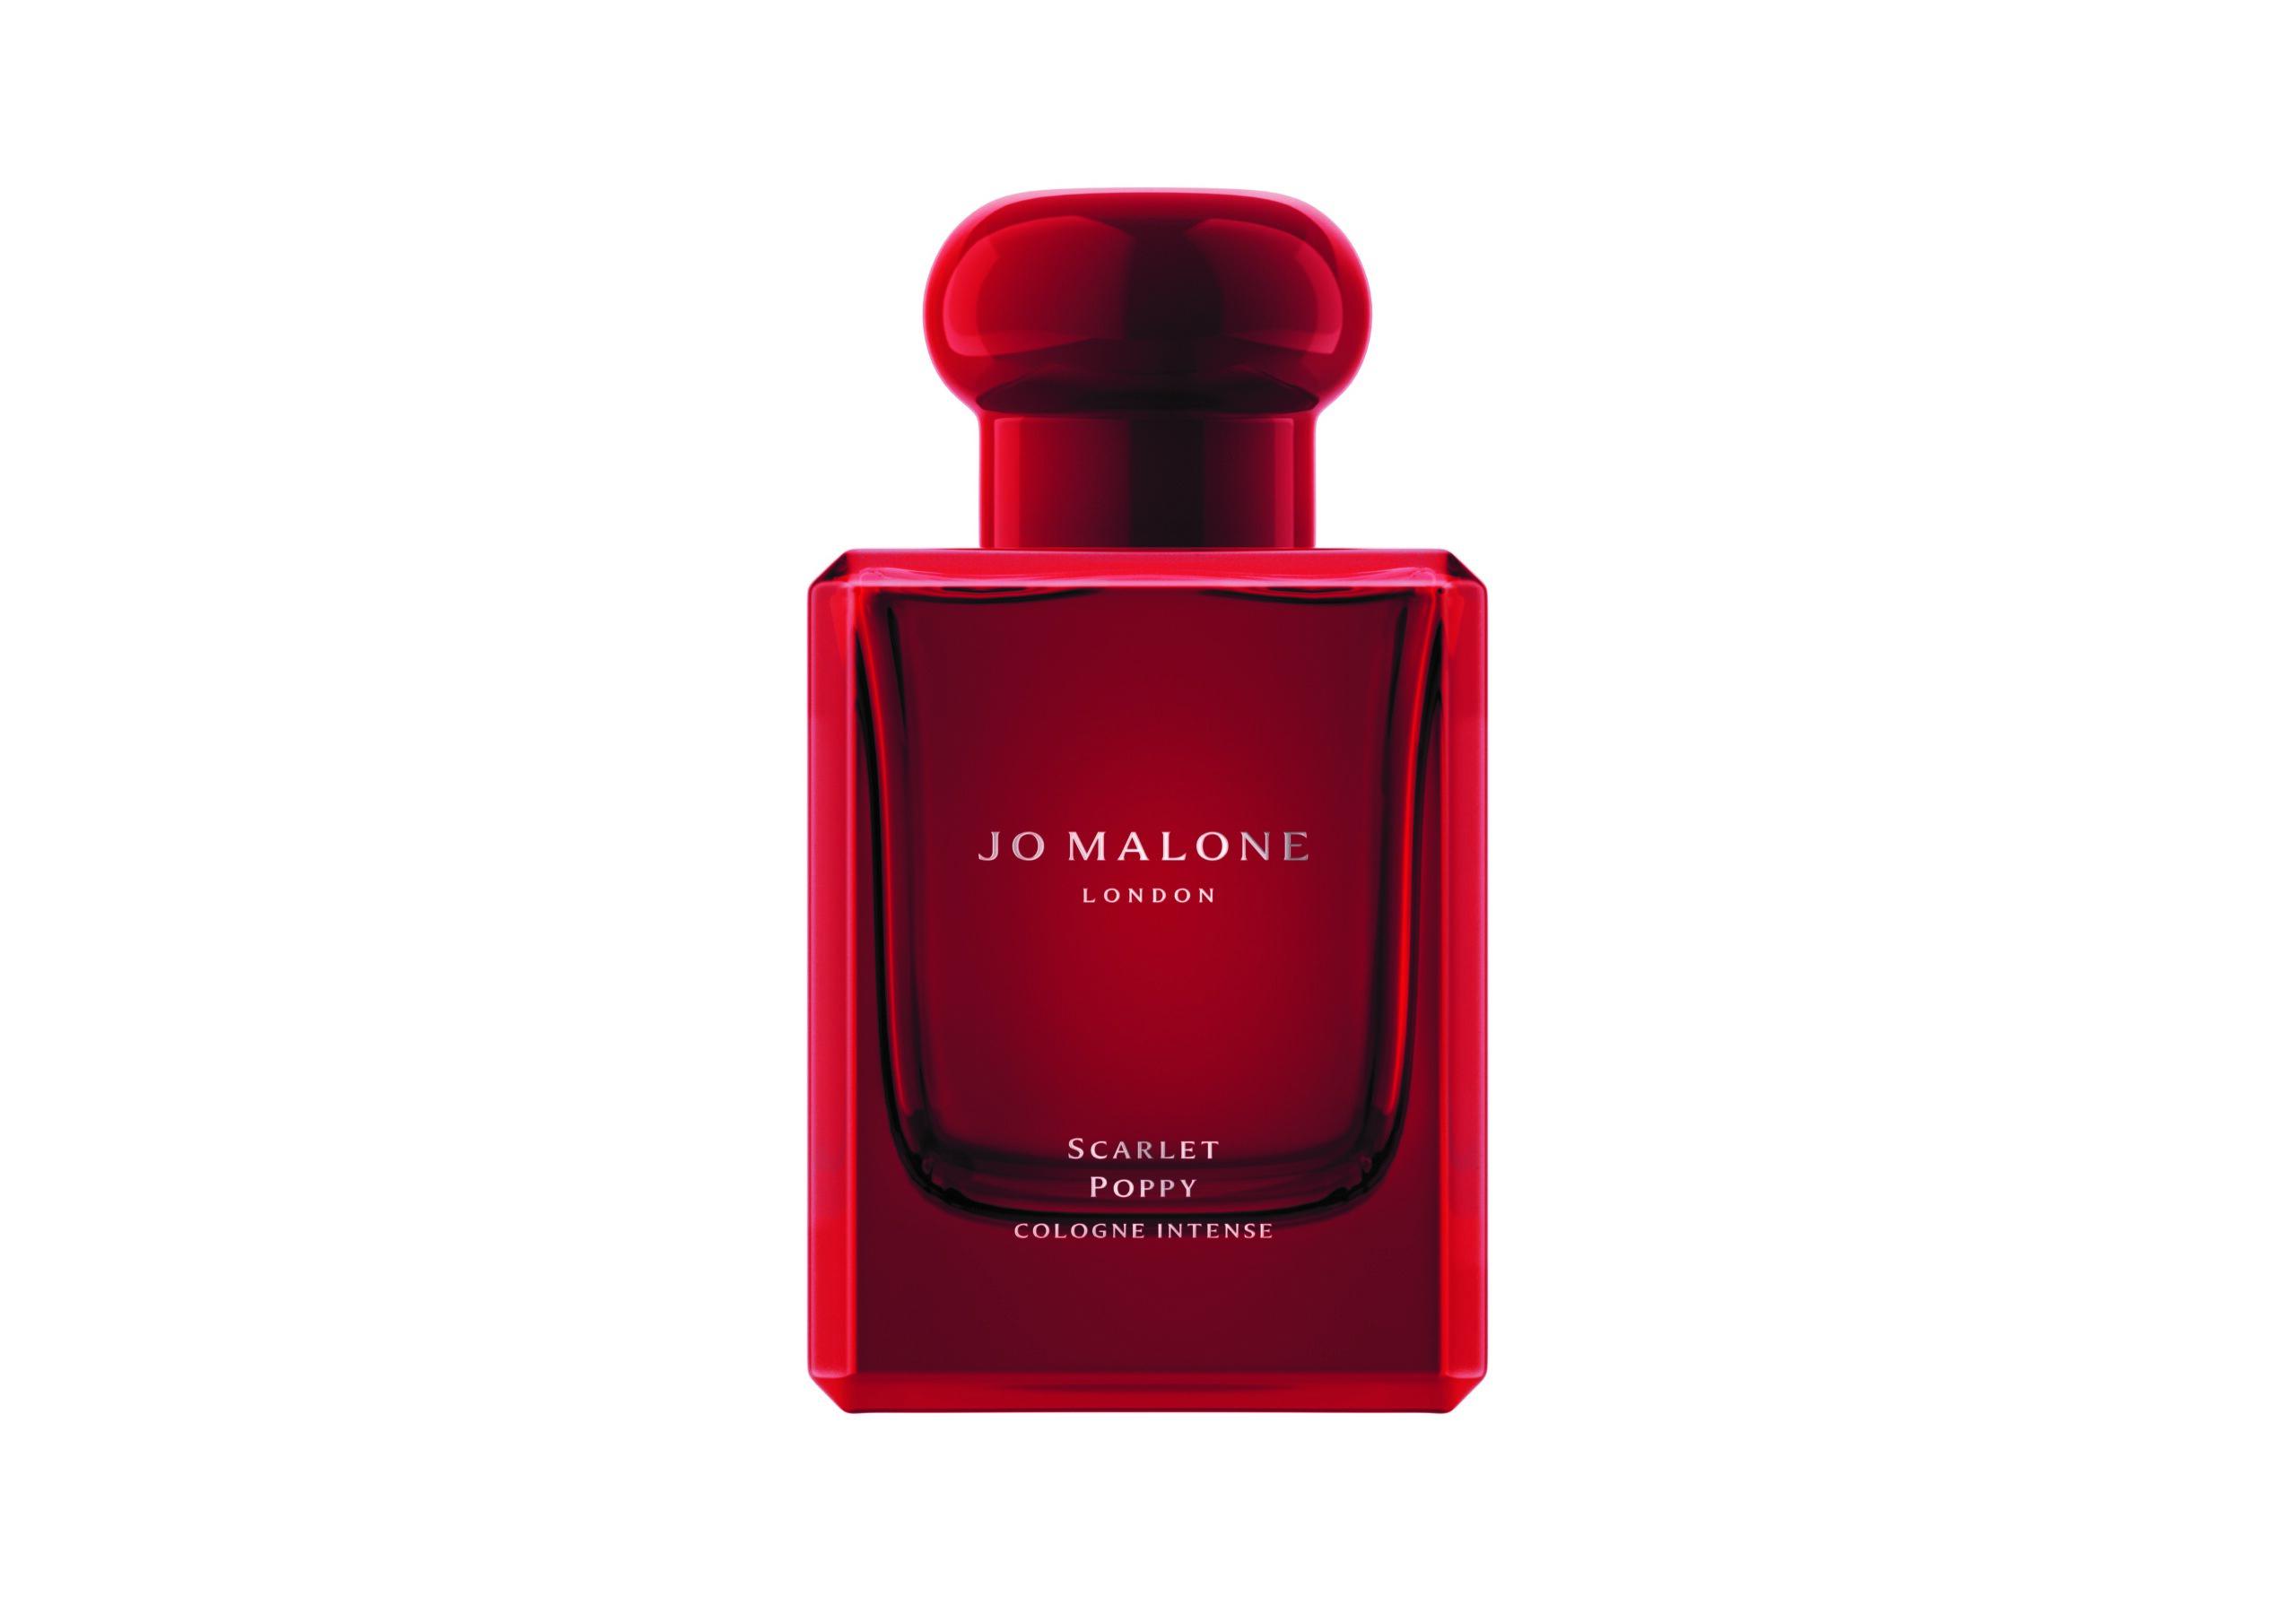 Scarlet Poppy Cologne Intense Bottle